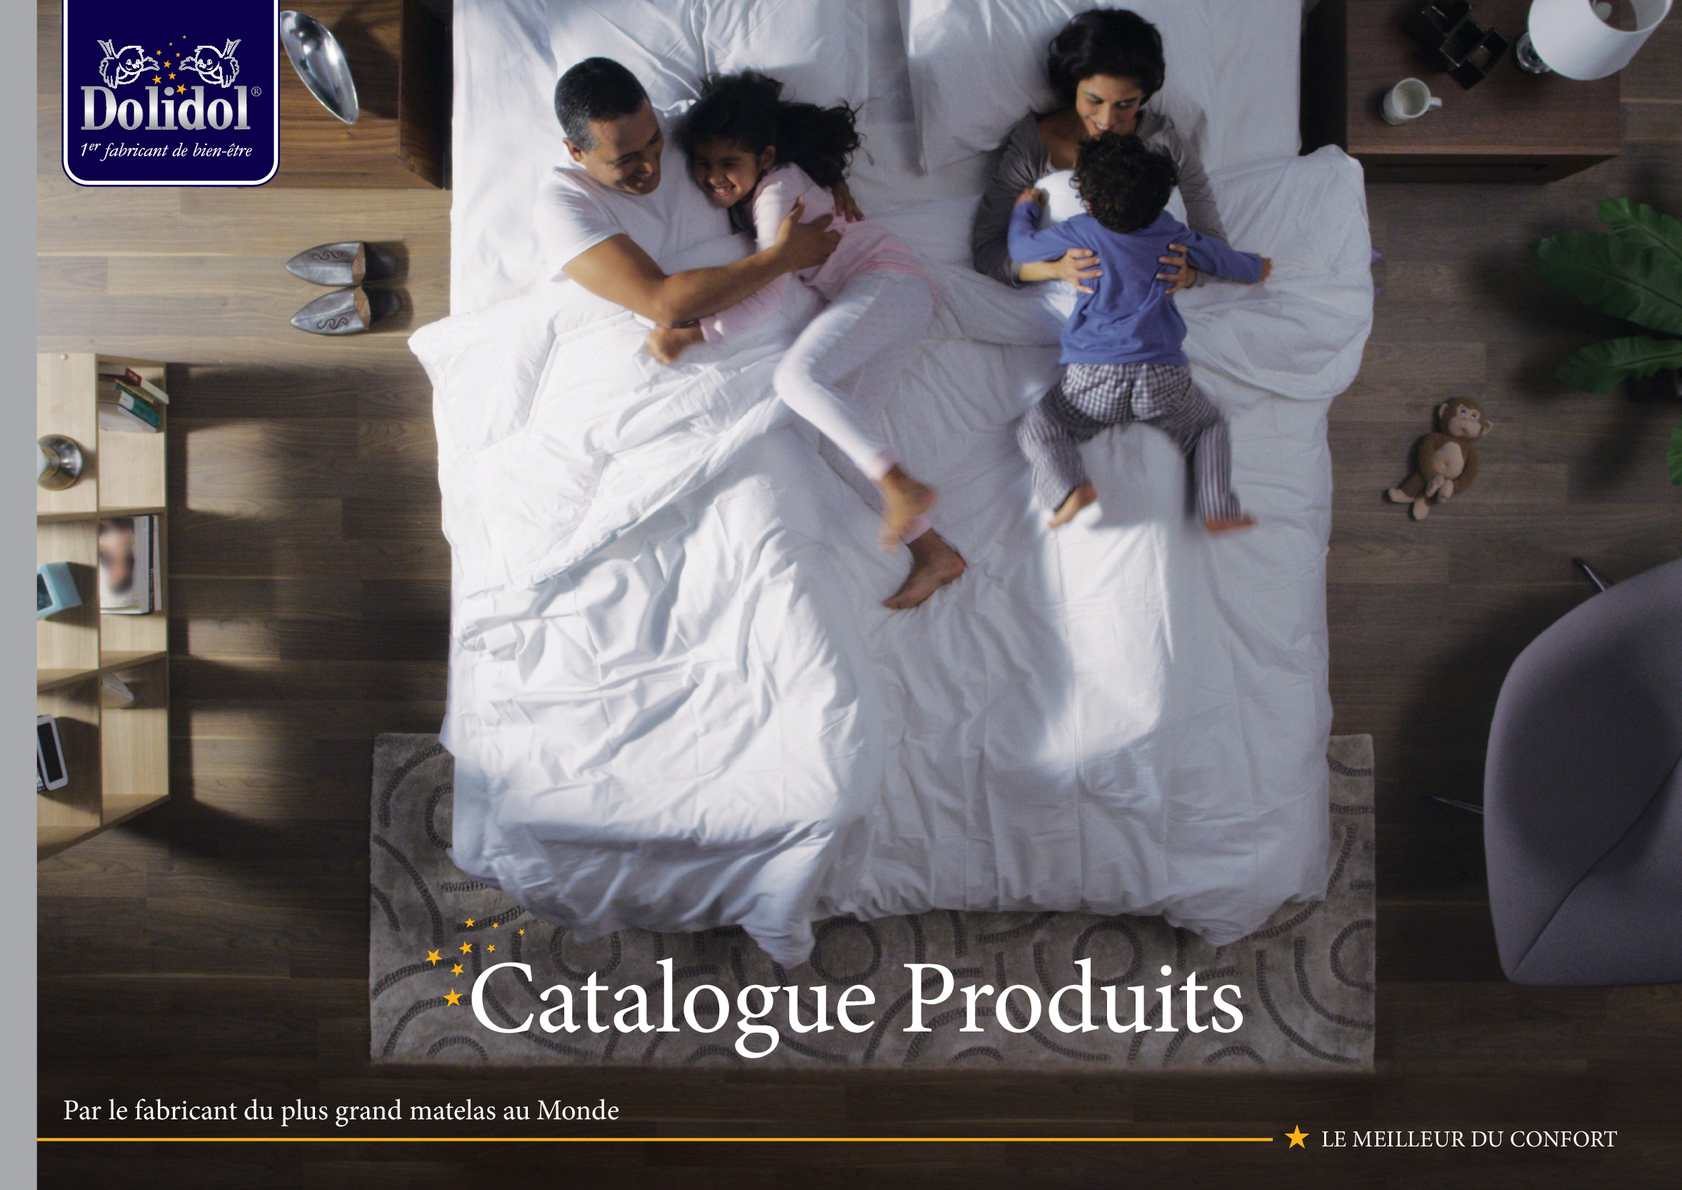 calam o dolidol catalogue 297x210 28 pages. Black Bedroom Furniture Sets. Home Design Ideas